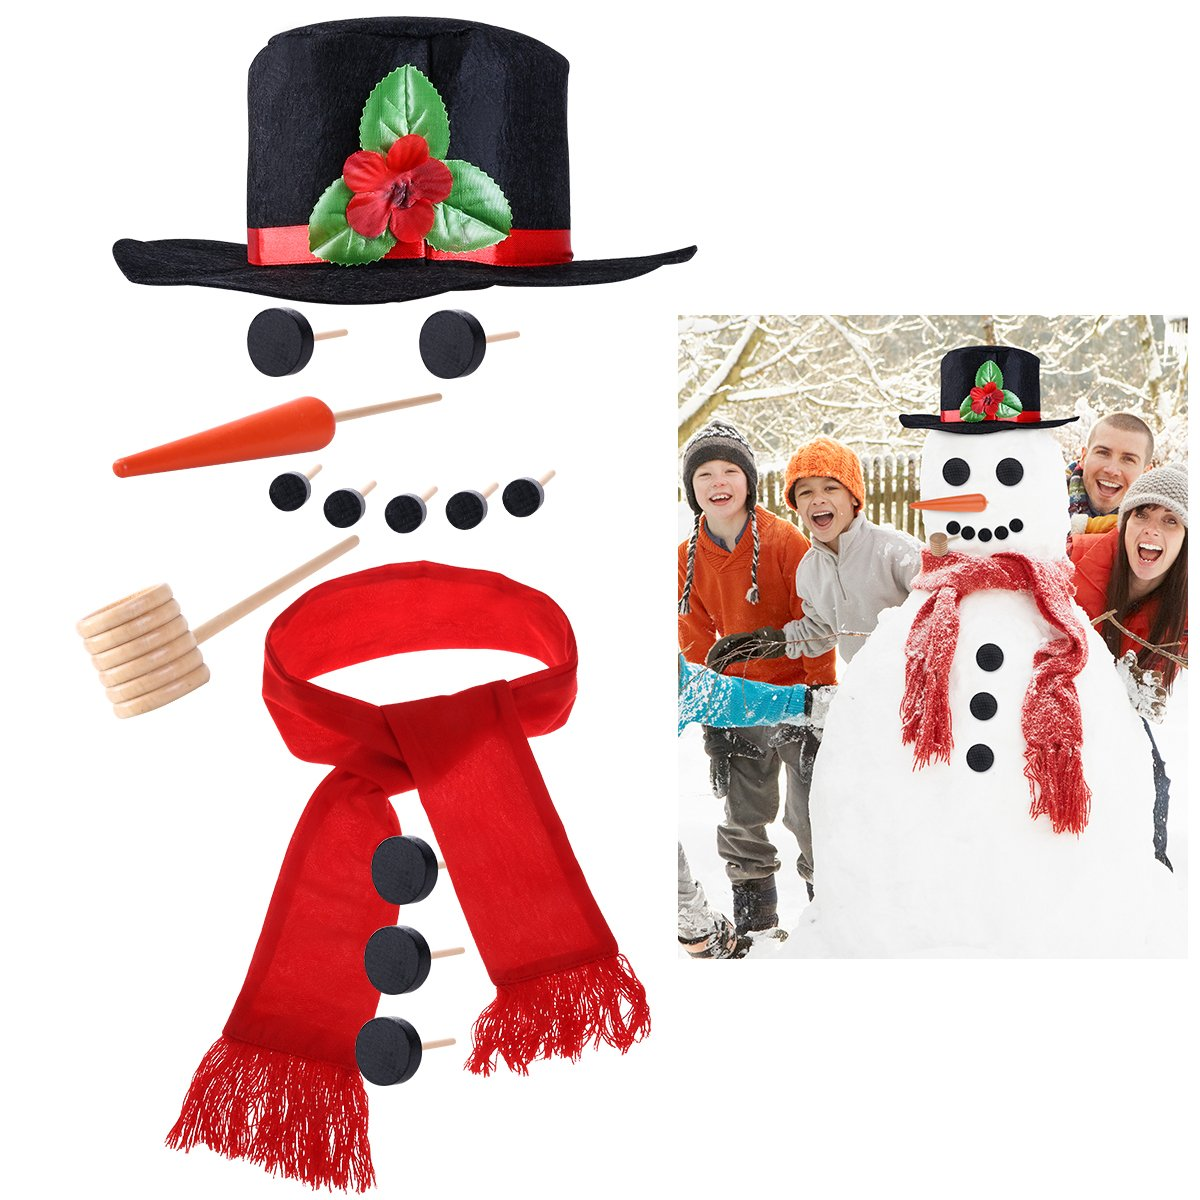 Ibasetoy Snowman Making Kit Includes Hat Scarf Wooden Carrot Nose